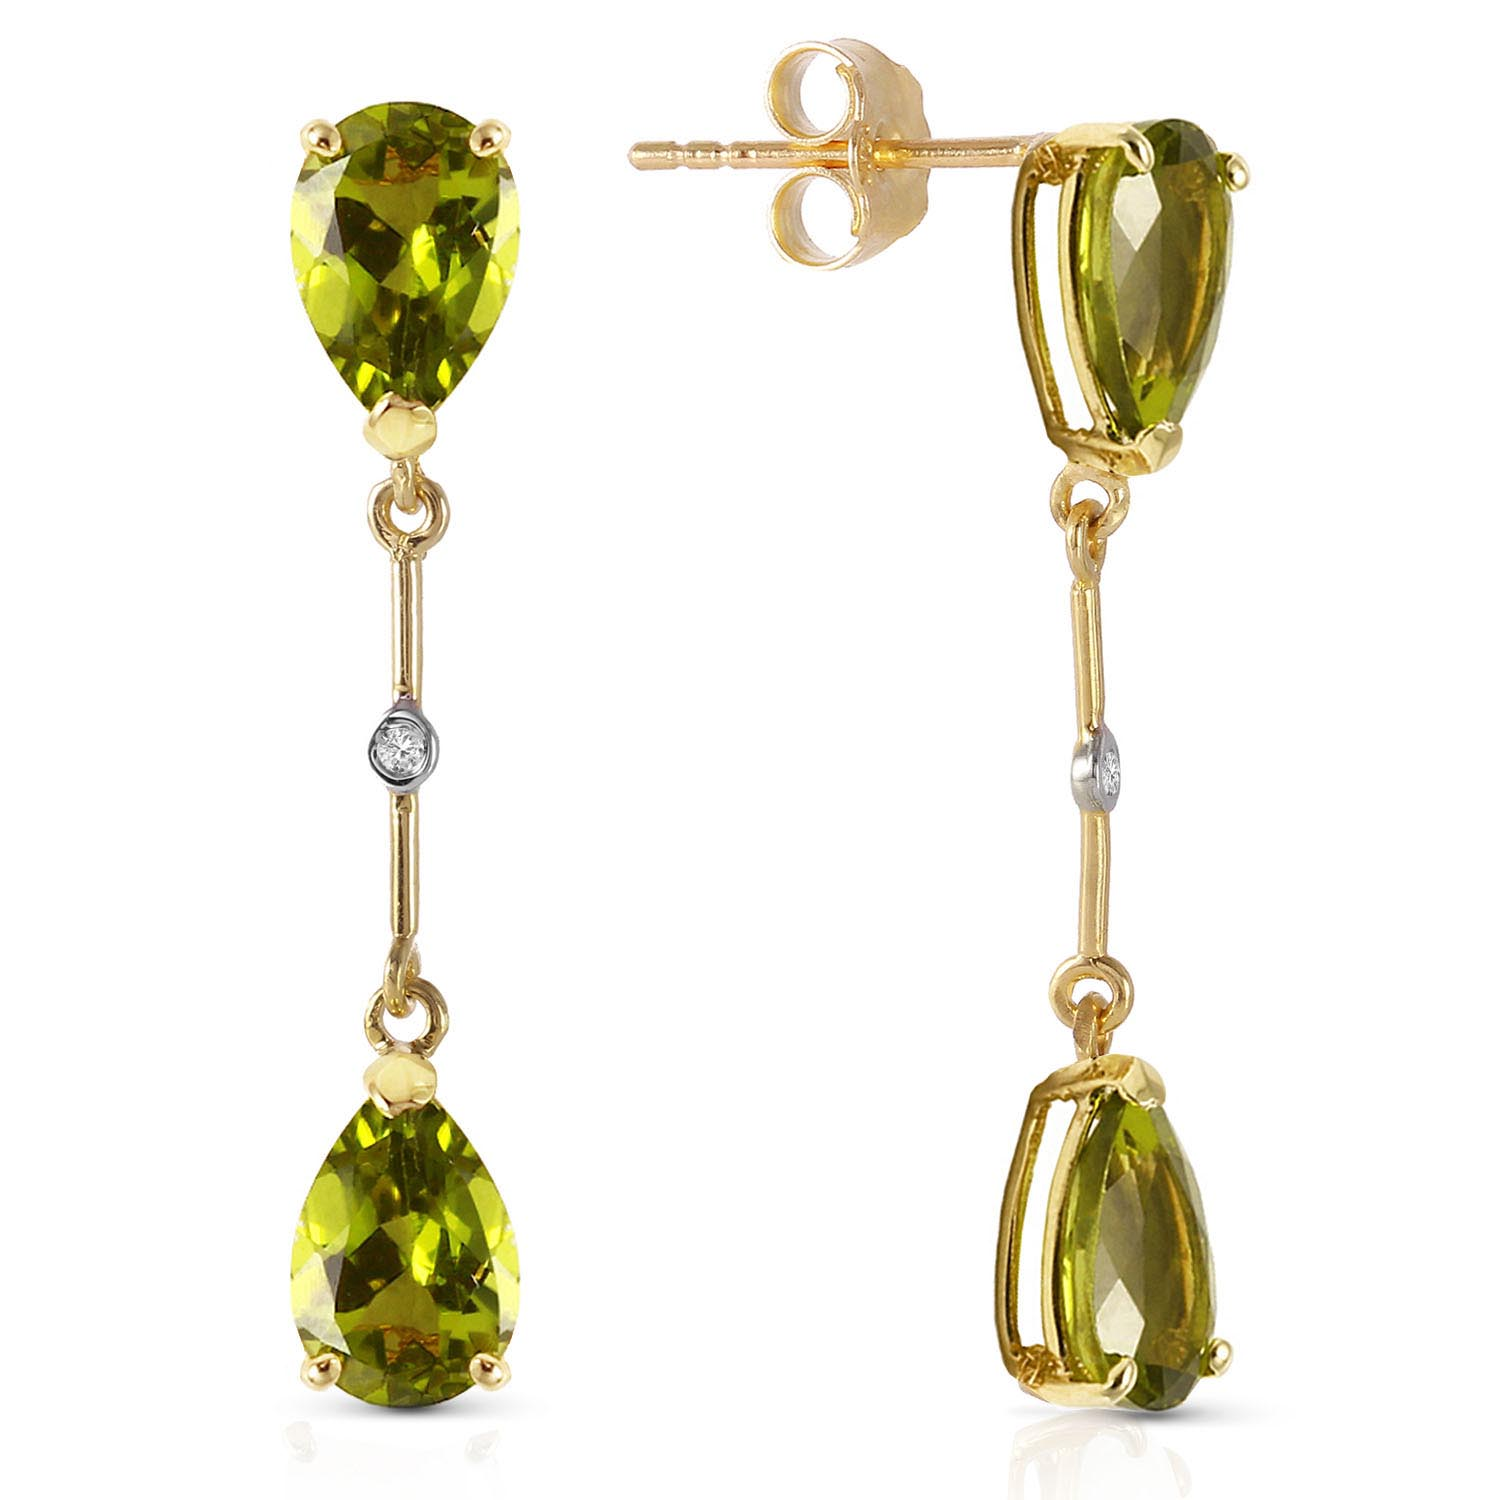 Peridot Drop Earrings 6.01 ctw in 9ct Gold